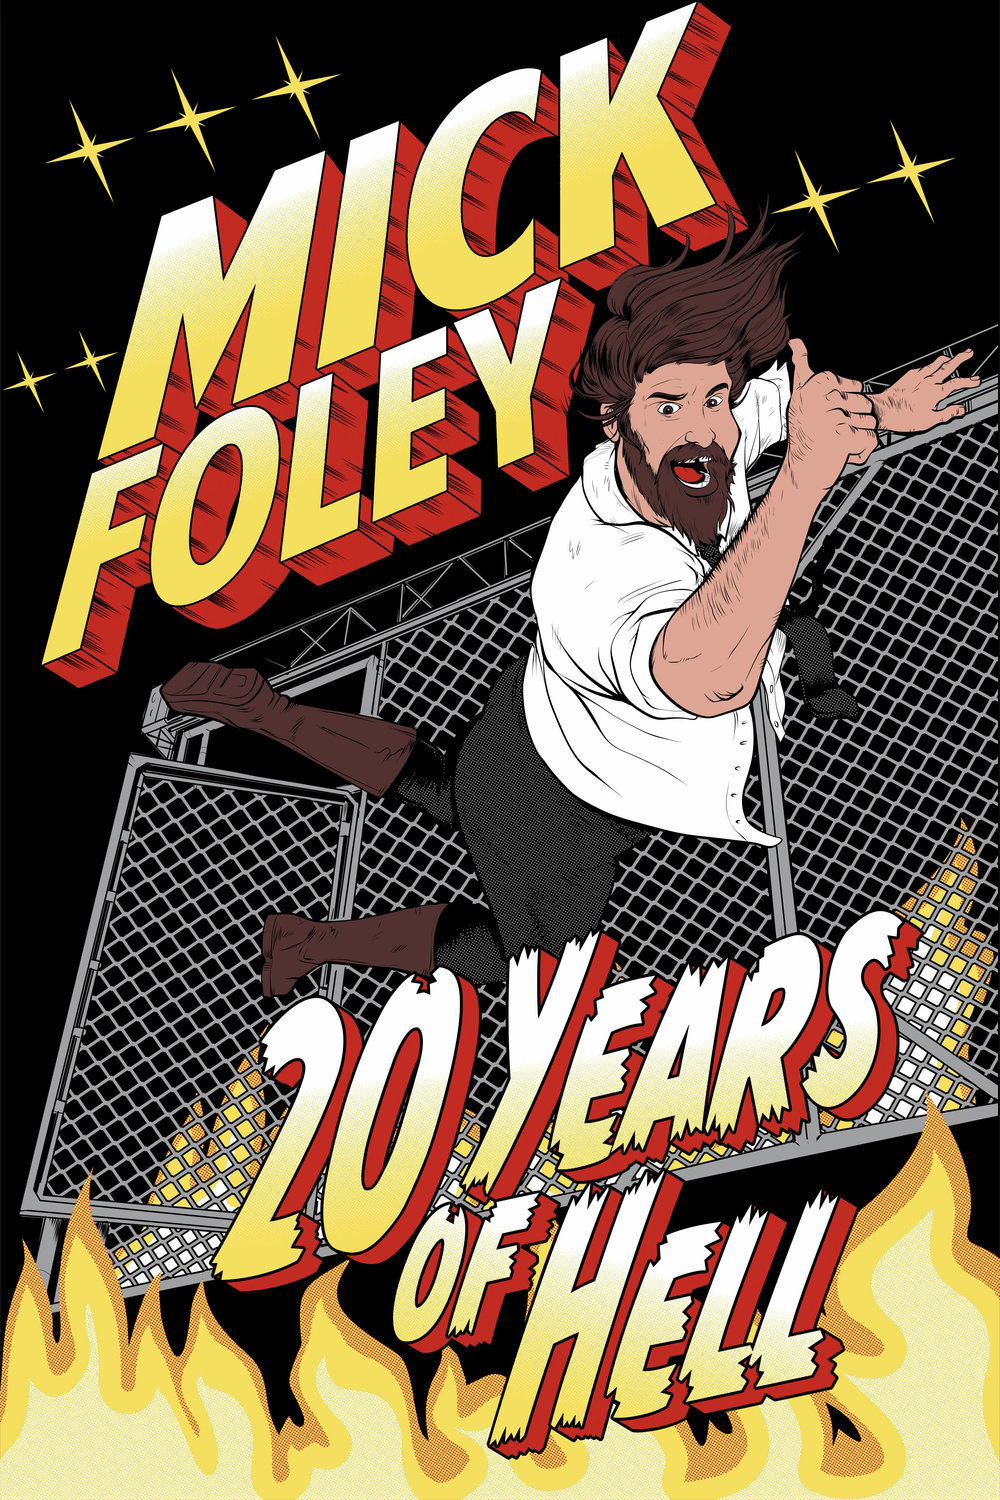 Mick Foley 2018 art.jpg